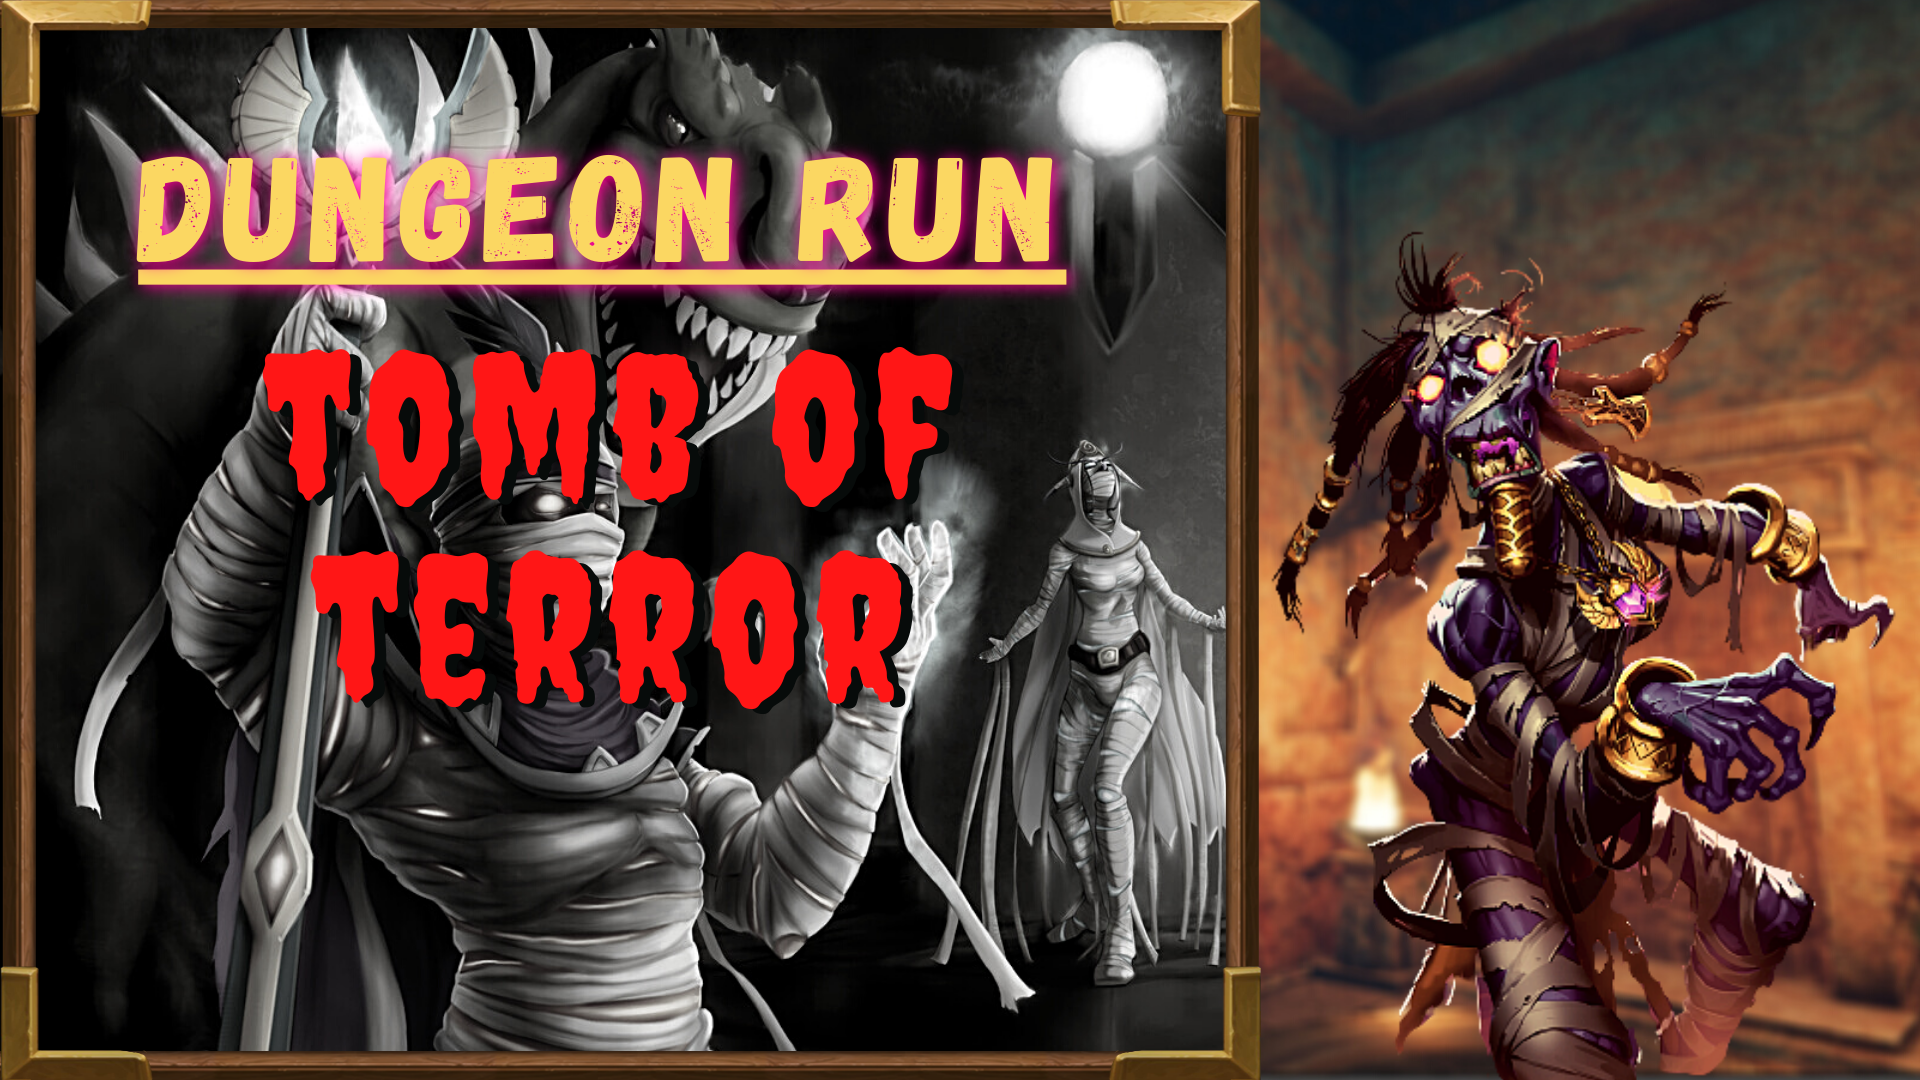 Dungeon run: Tomb of terror GBD - e2p.com